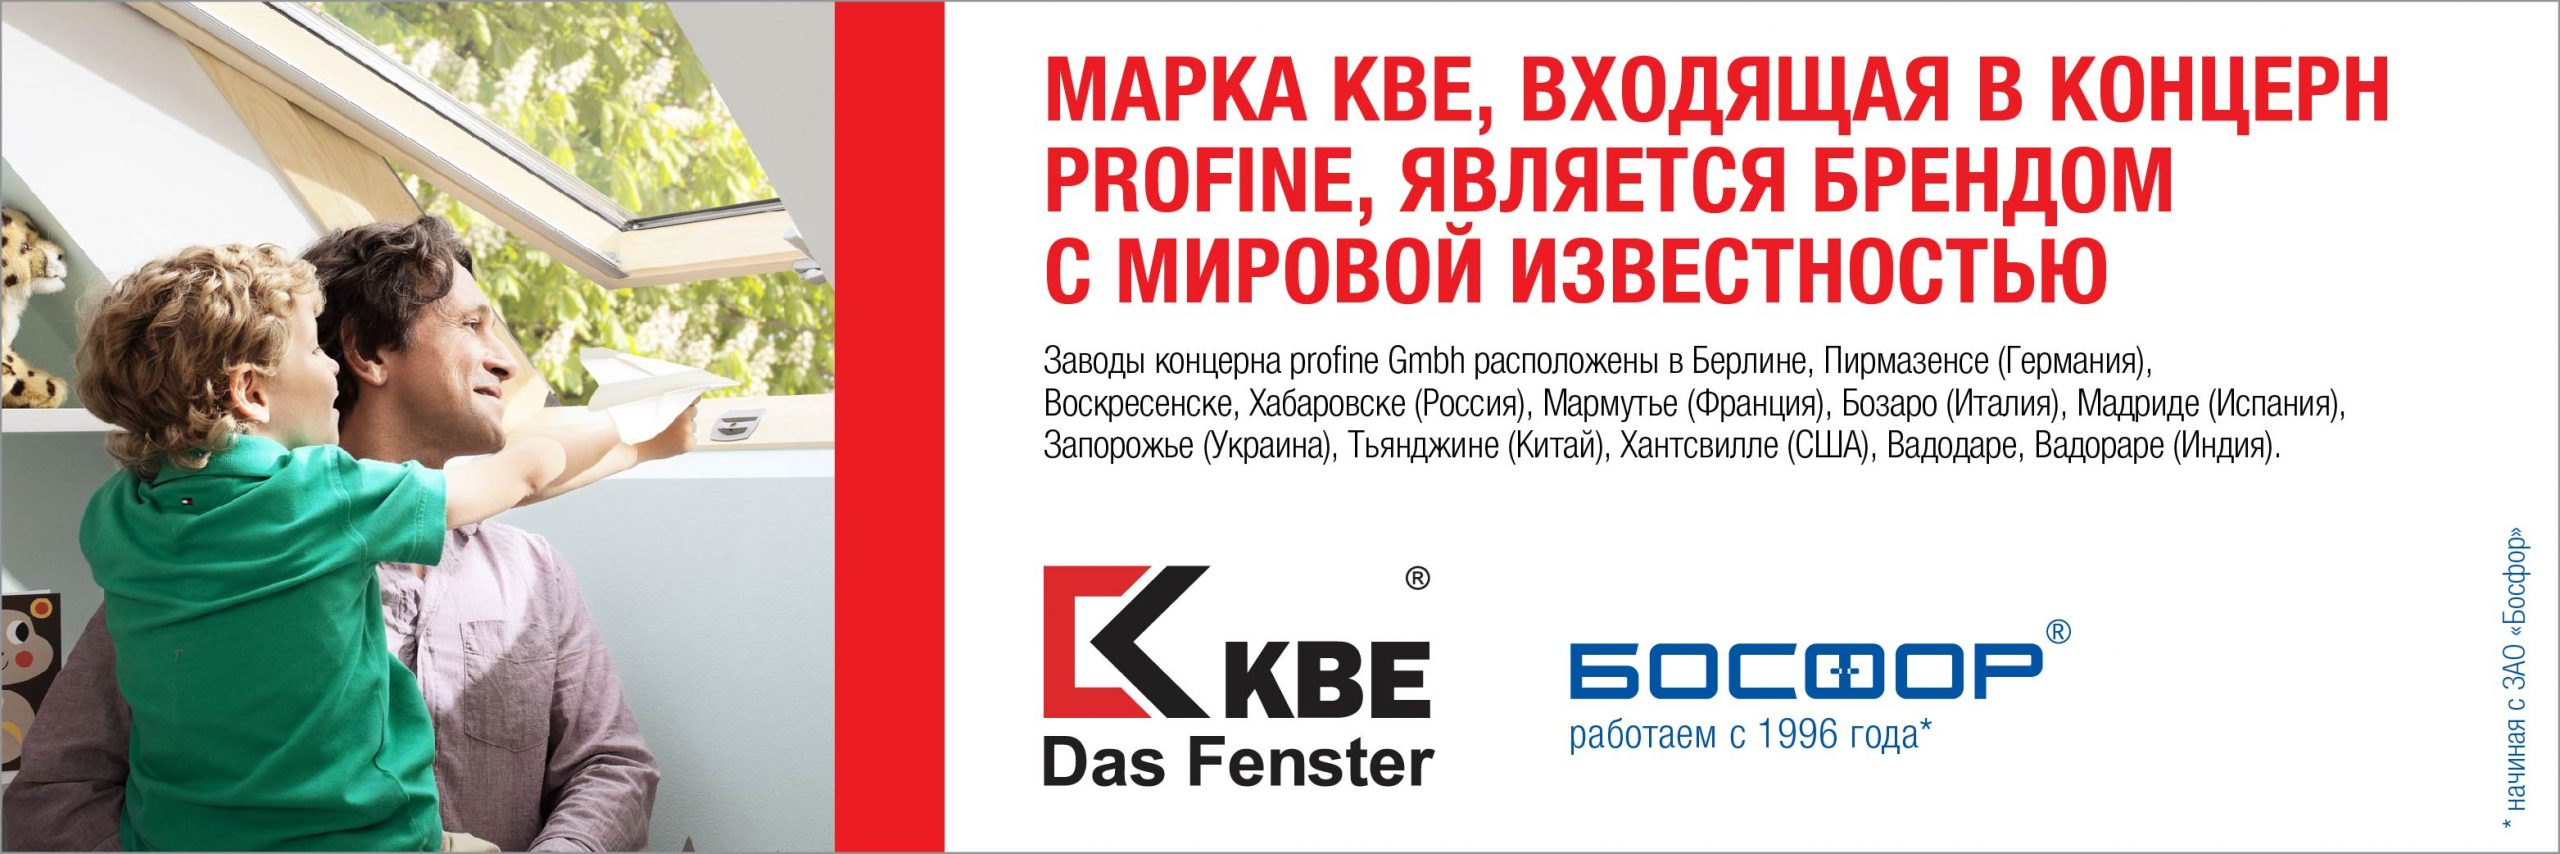 site_banners_kbe-02